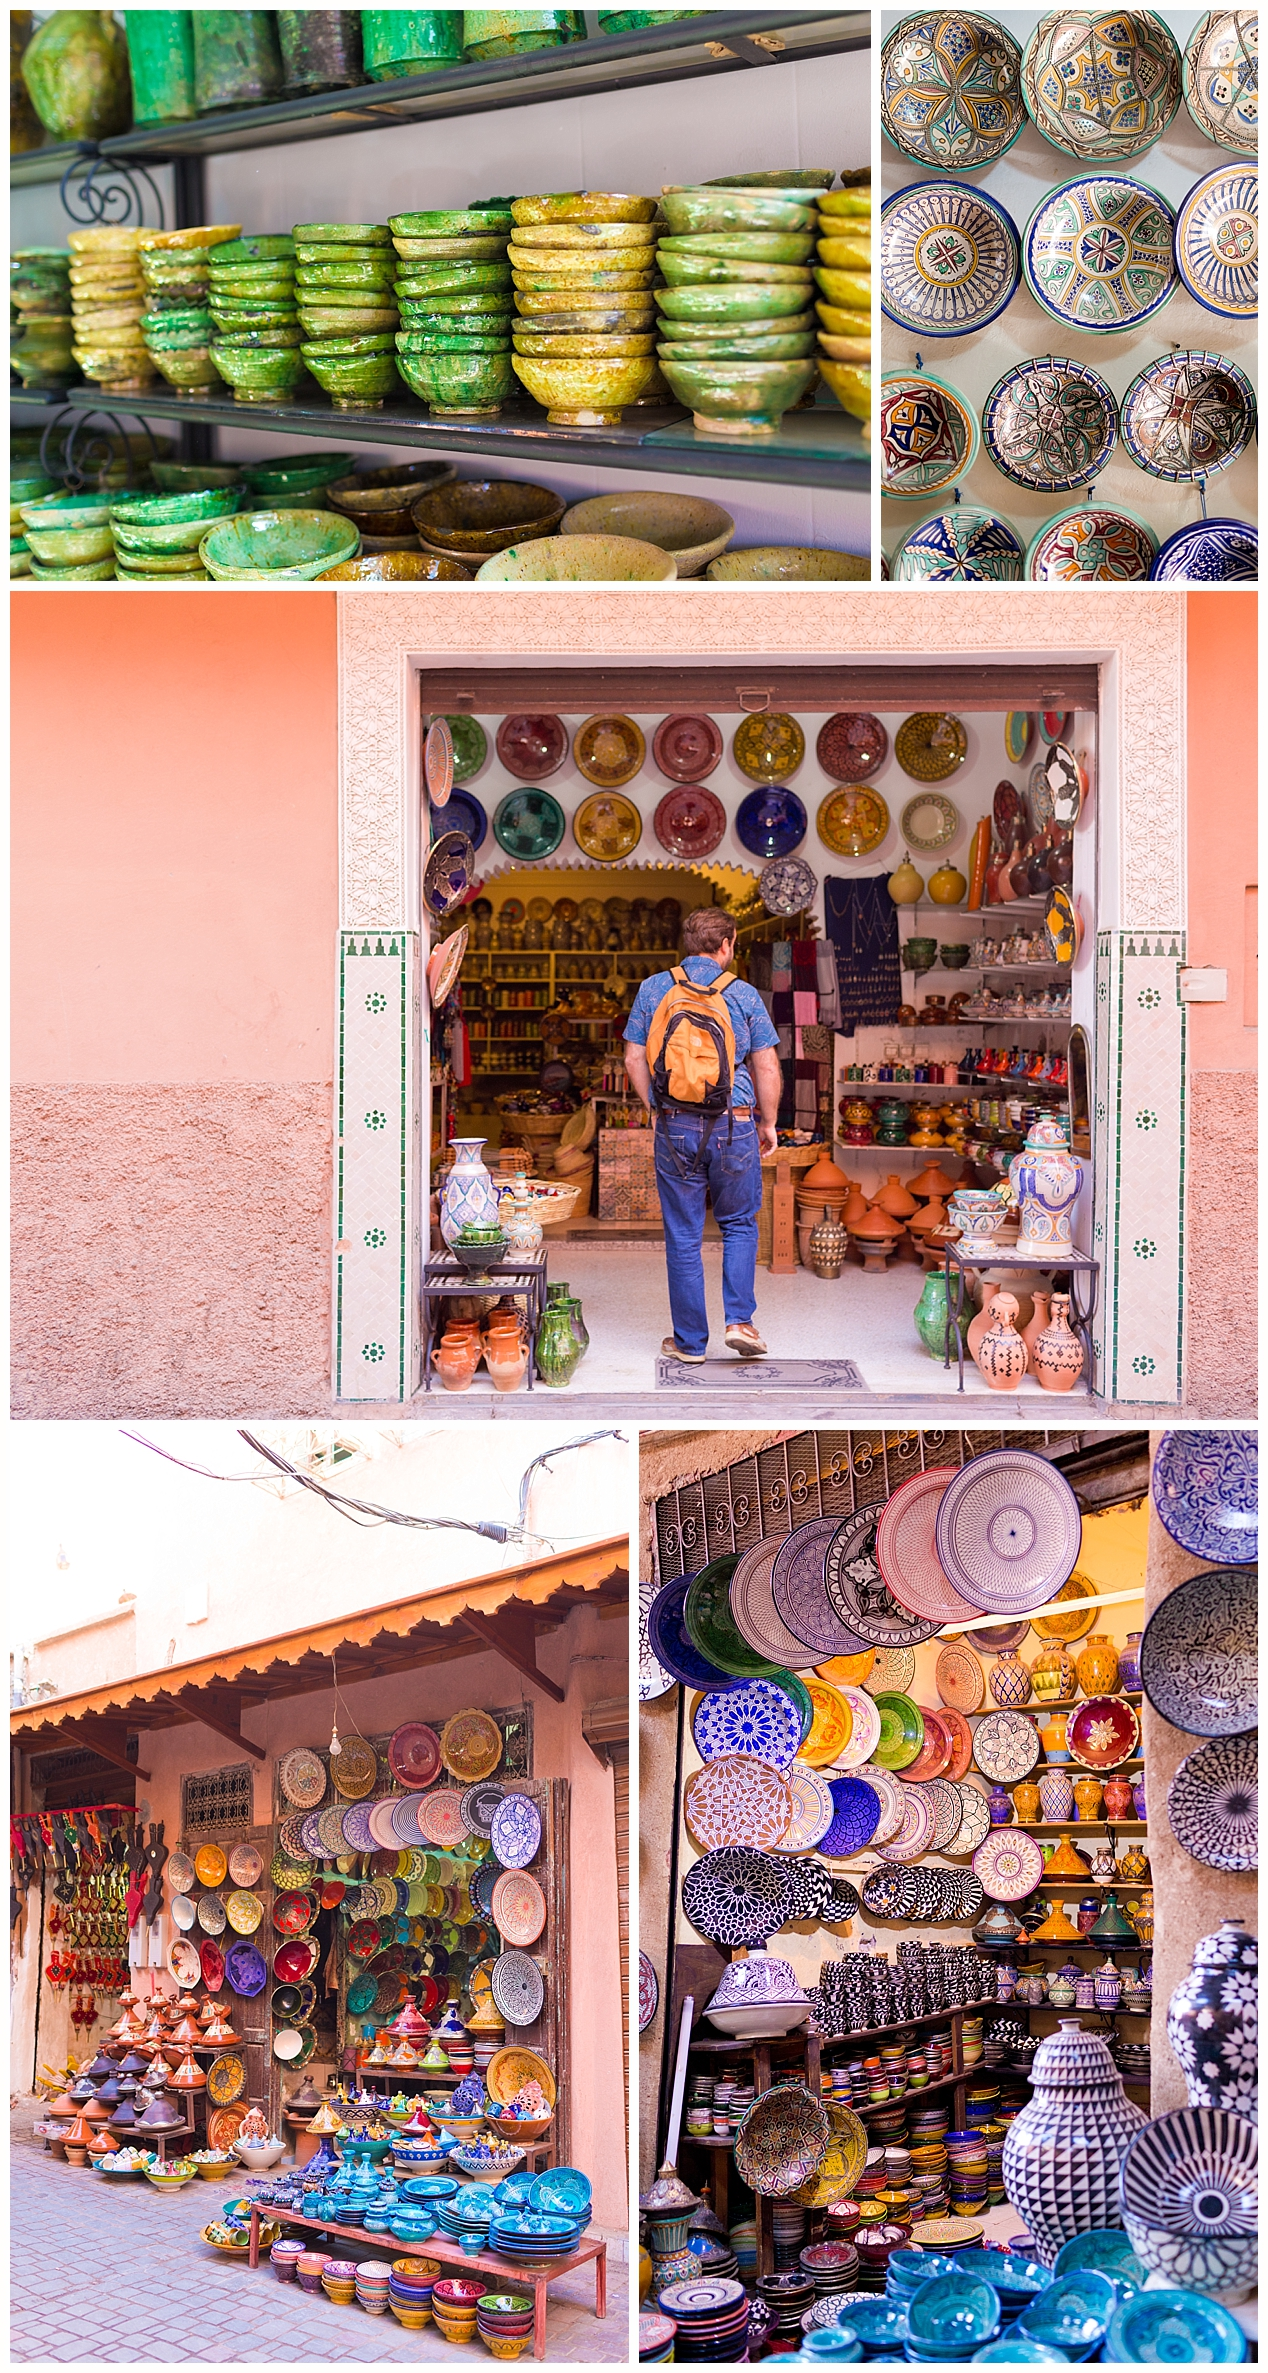 Marrakech souks - dishes and pottery